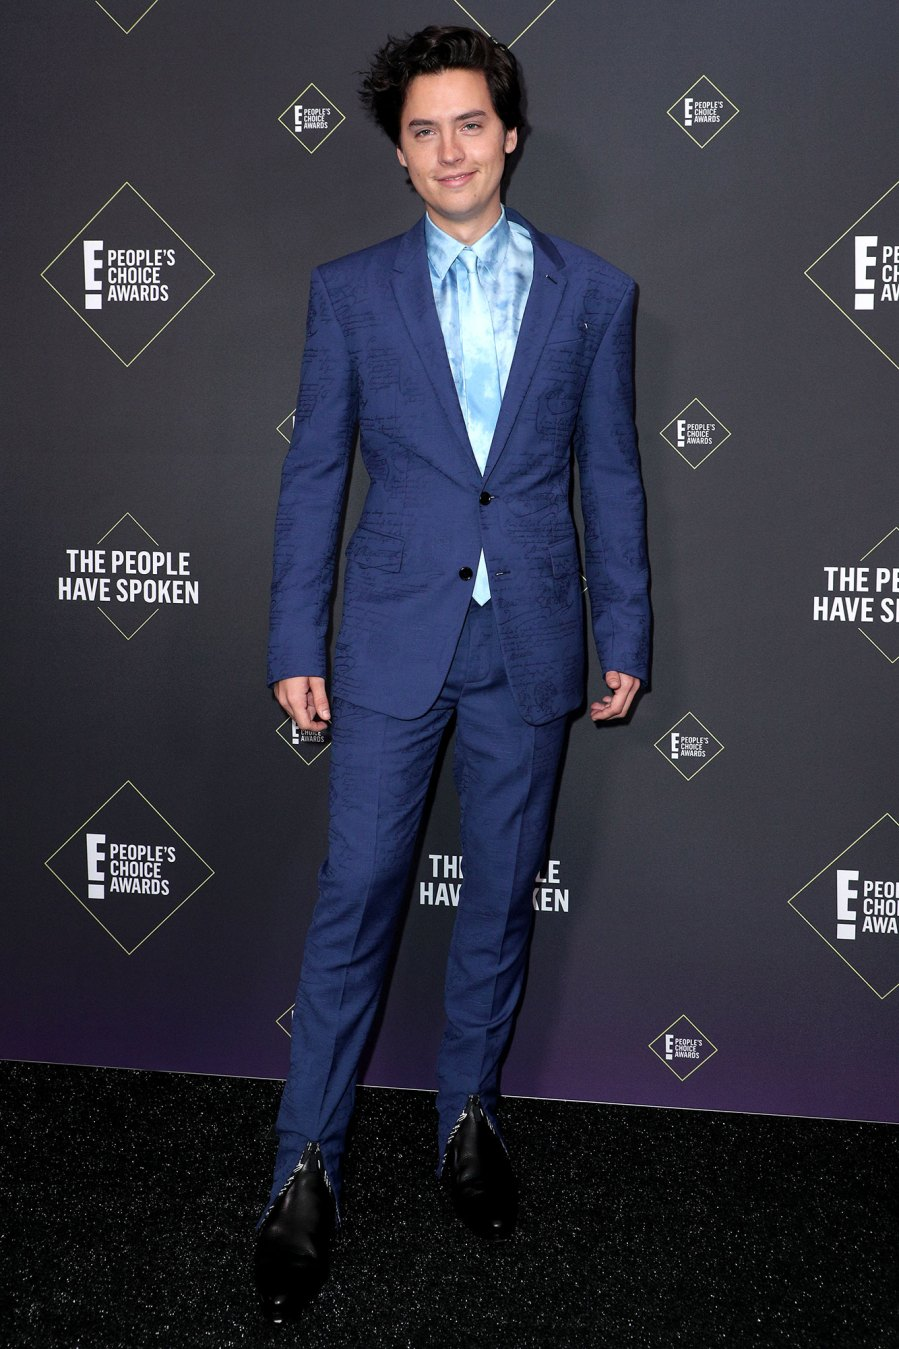 Cole Sprouse Promises to Be More Active on Instagram Blue Suit